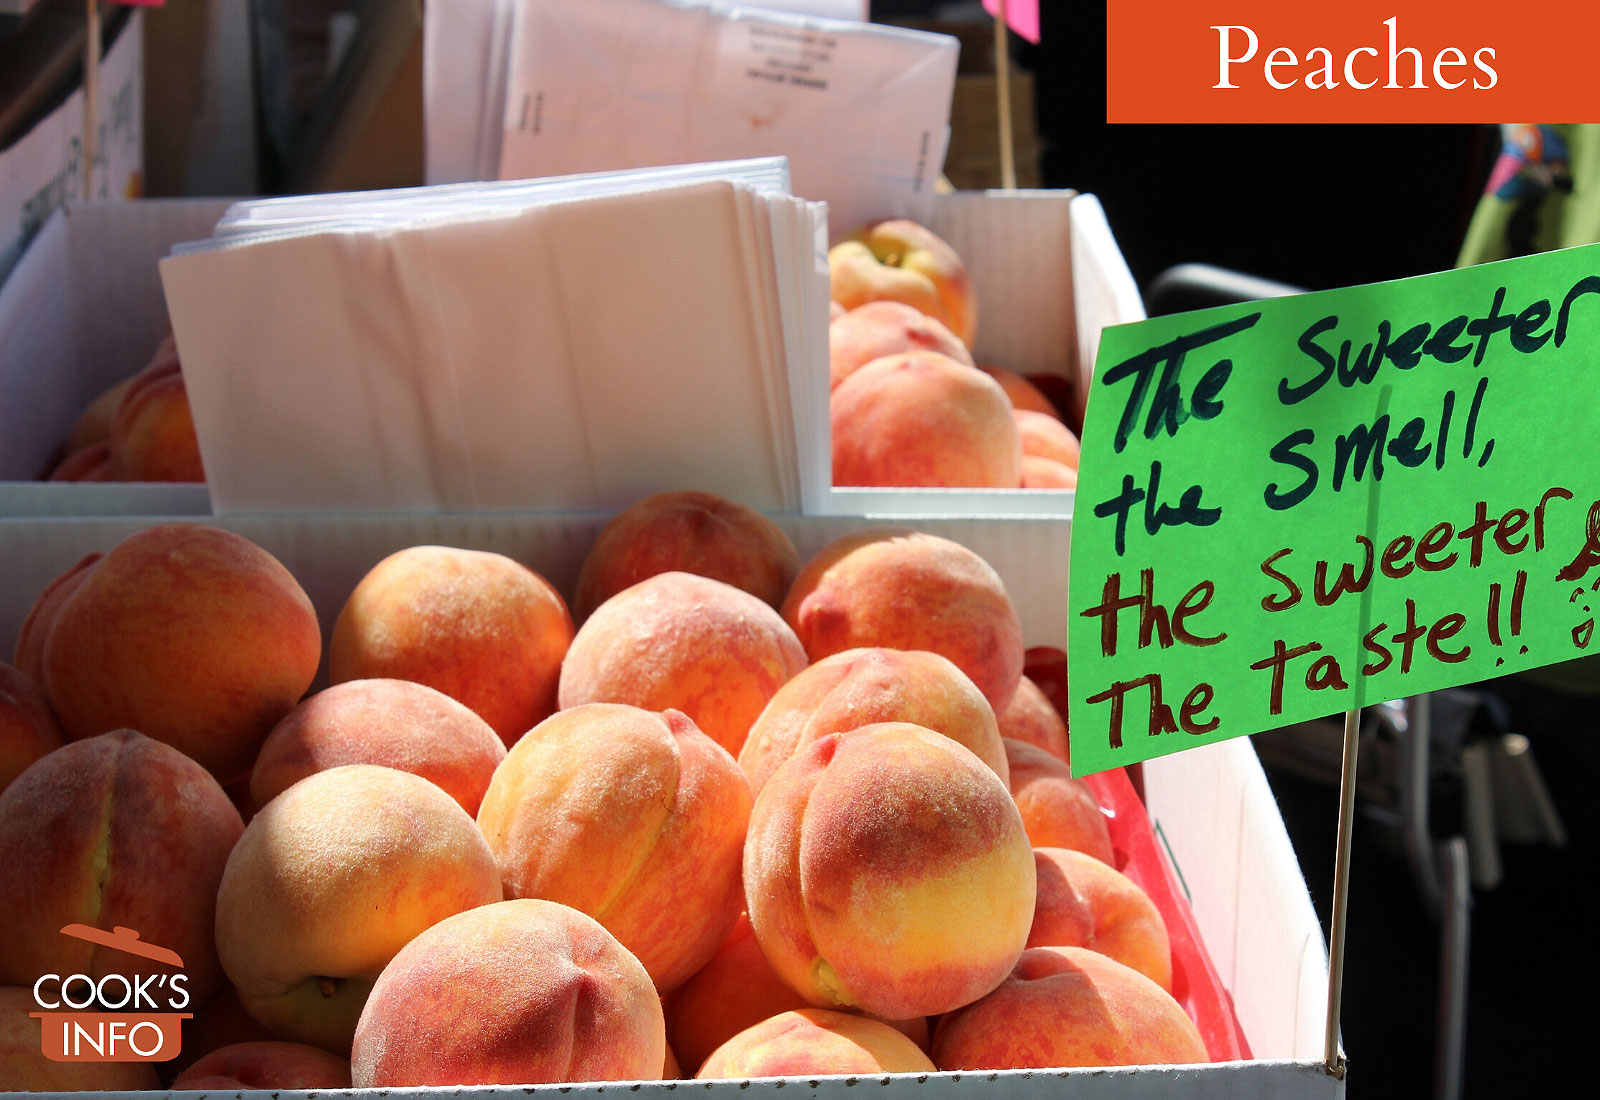 Peaches in box with sweet sign